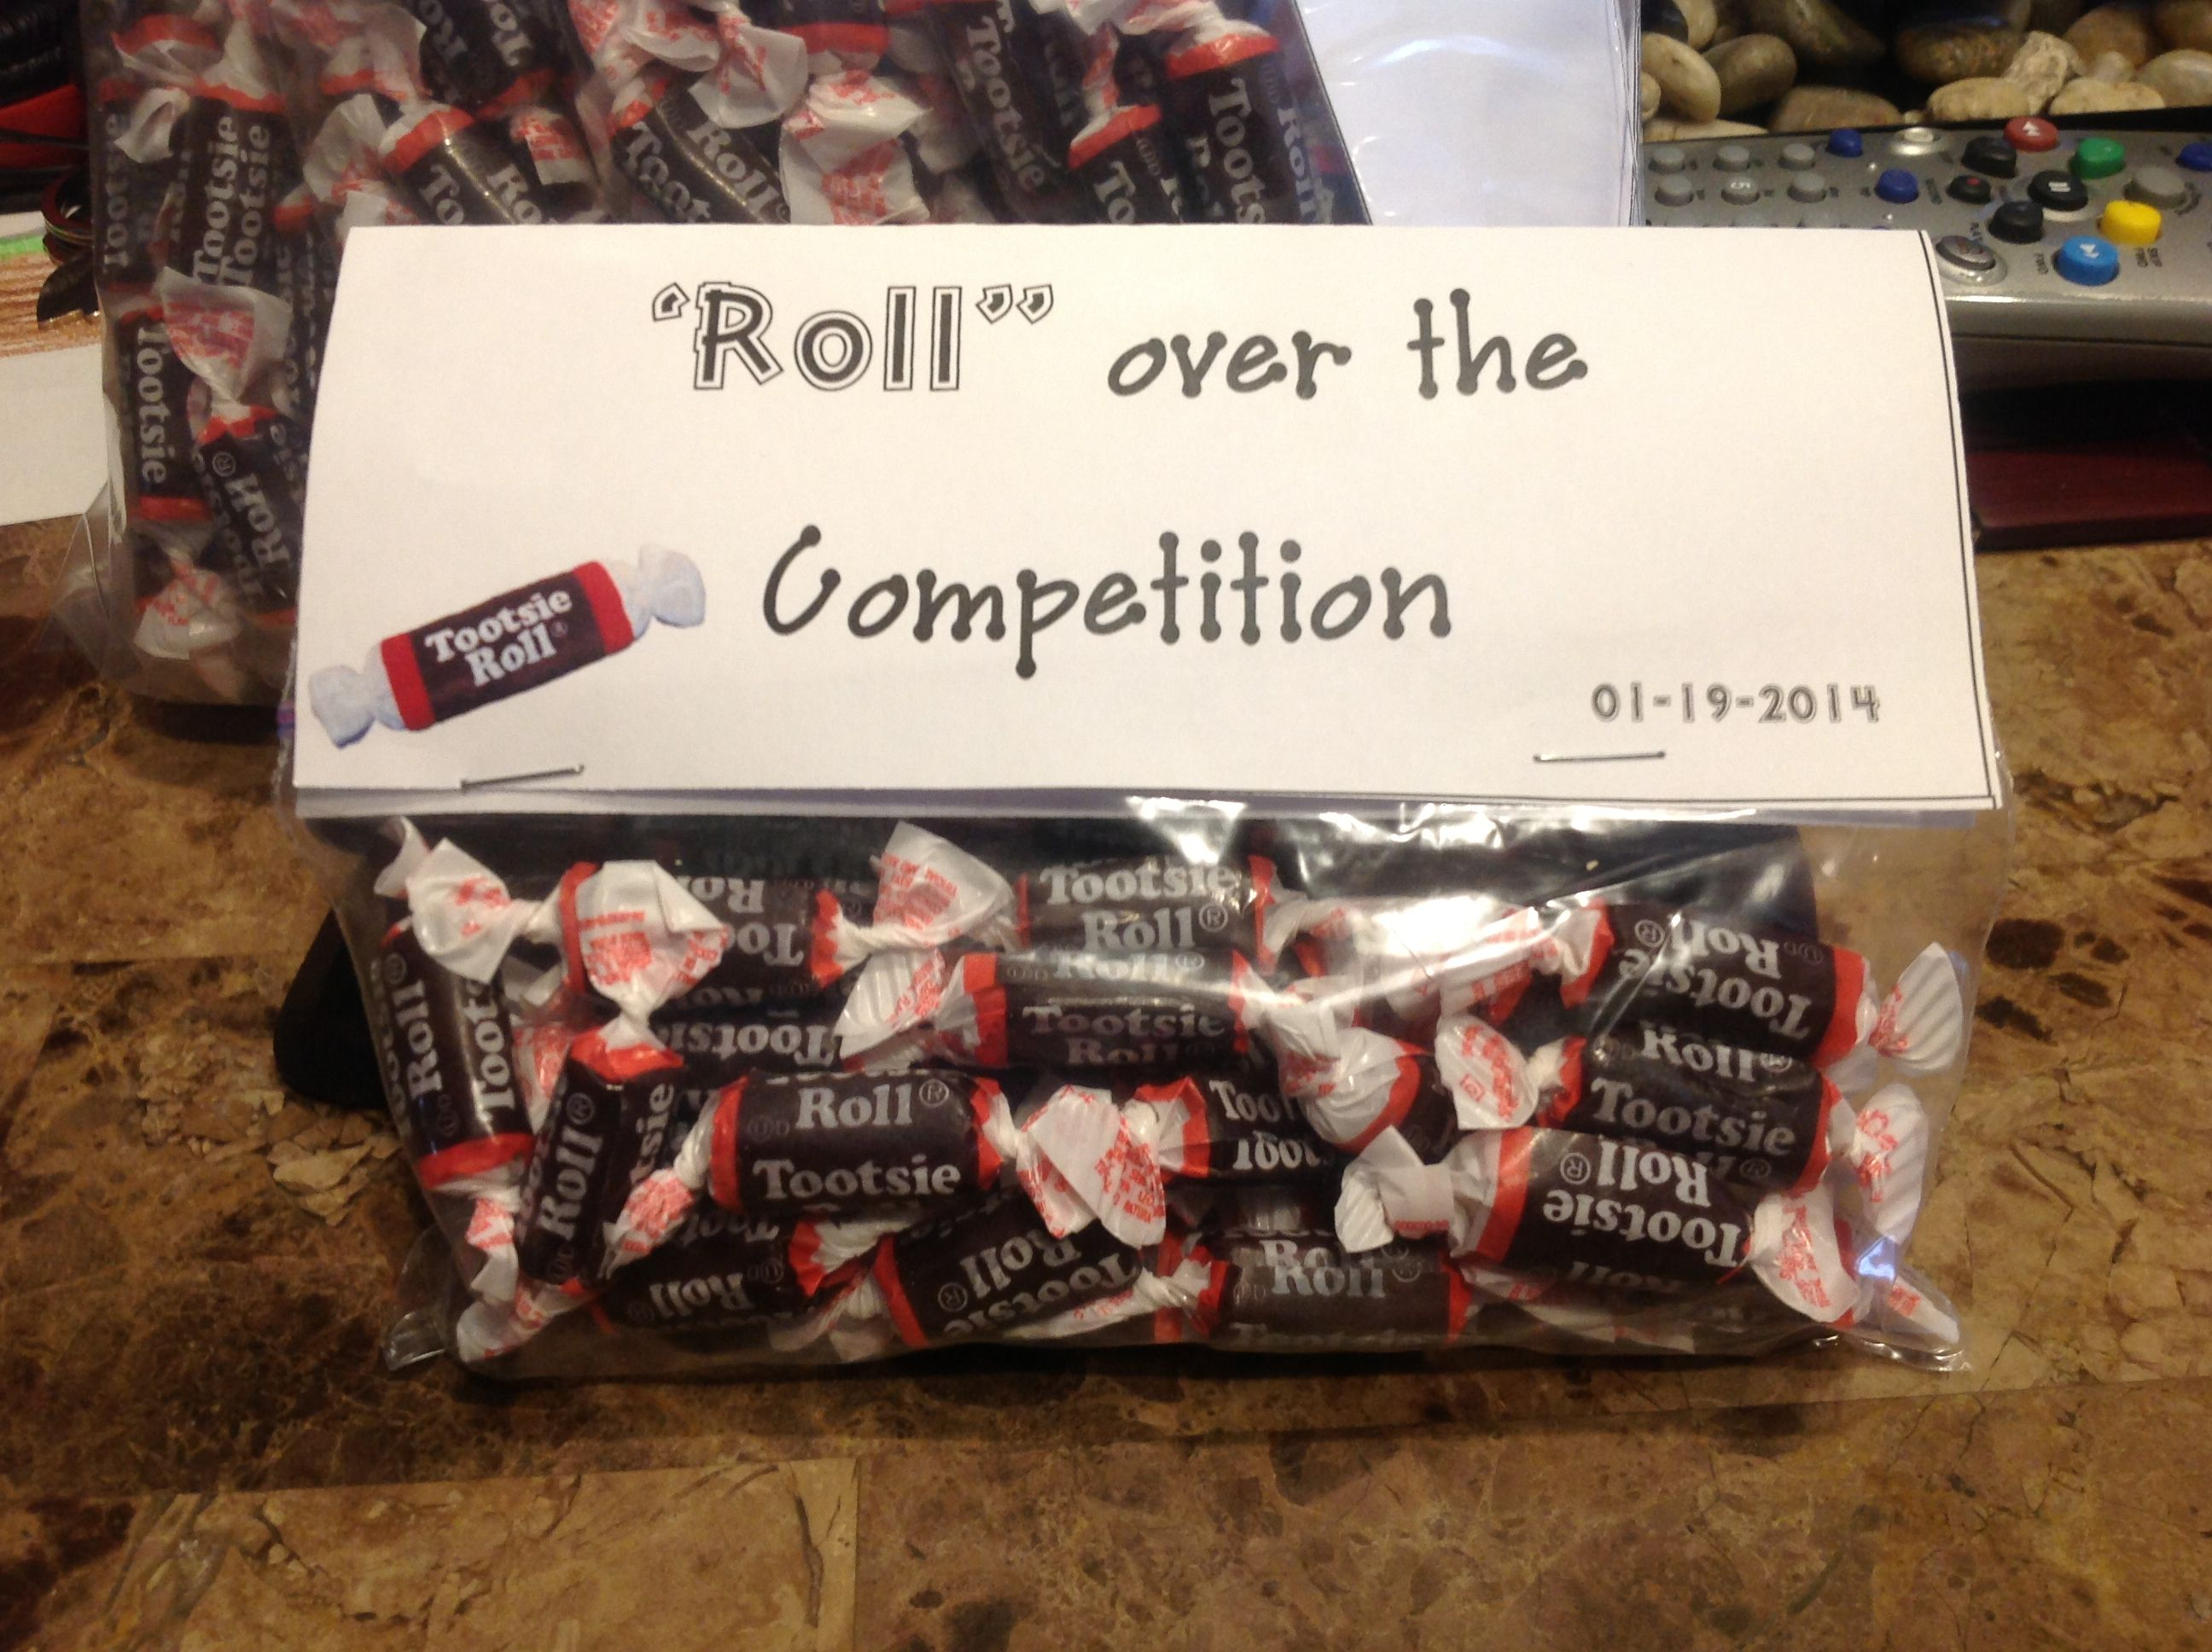 Pin By Kelly Reynolds On Dance Team Dance Team Gifts Cheerleading Gifts Cheer Competition Gifts